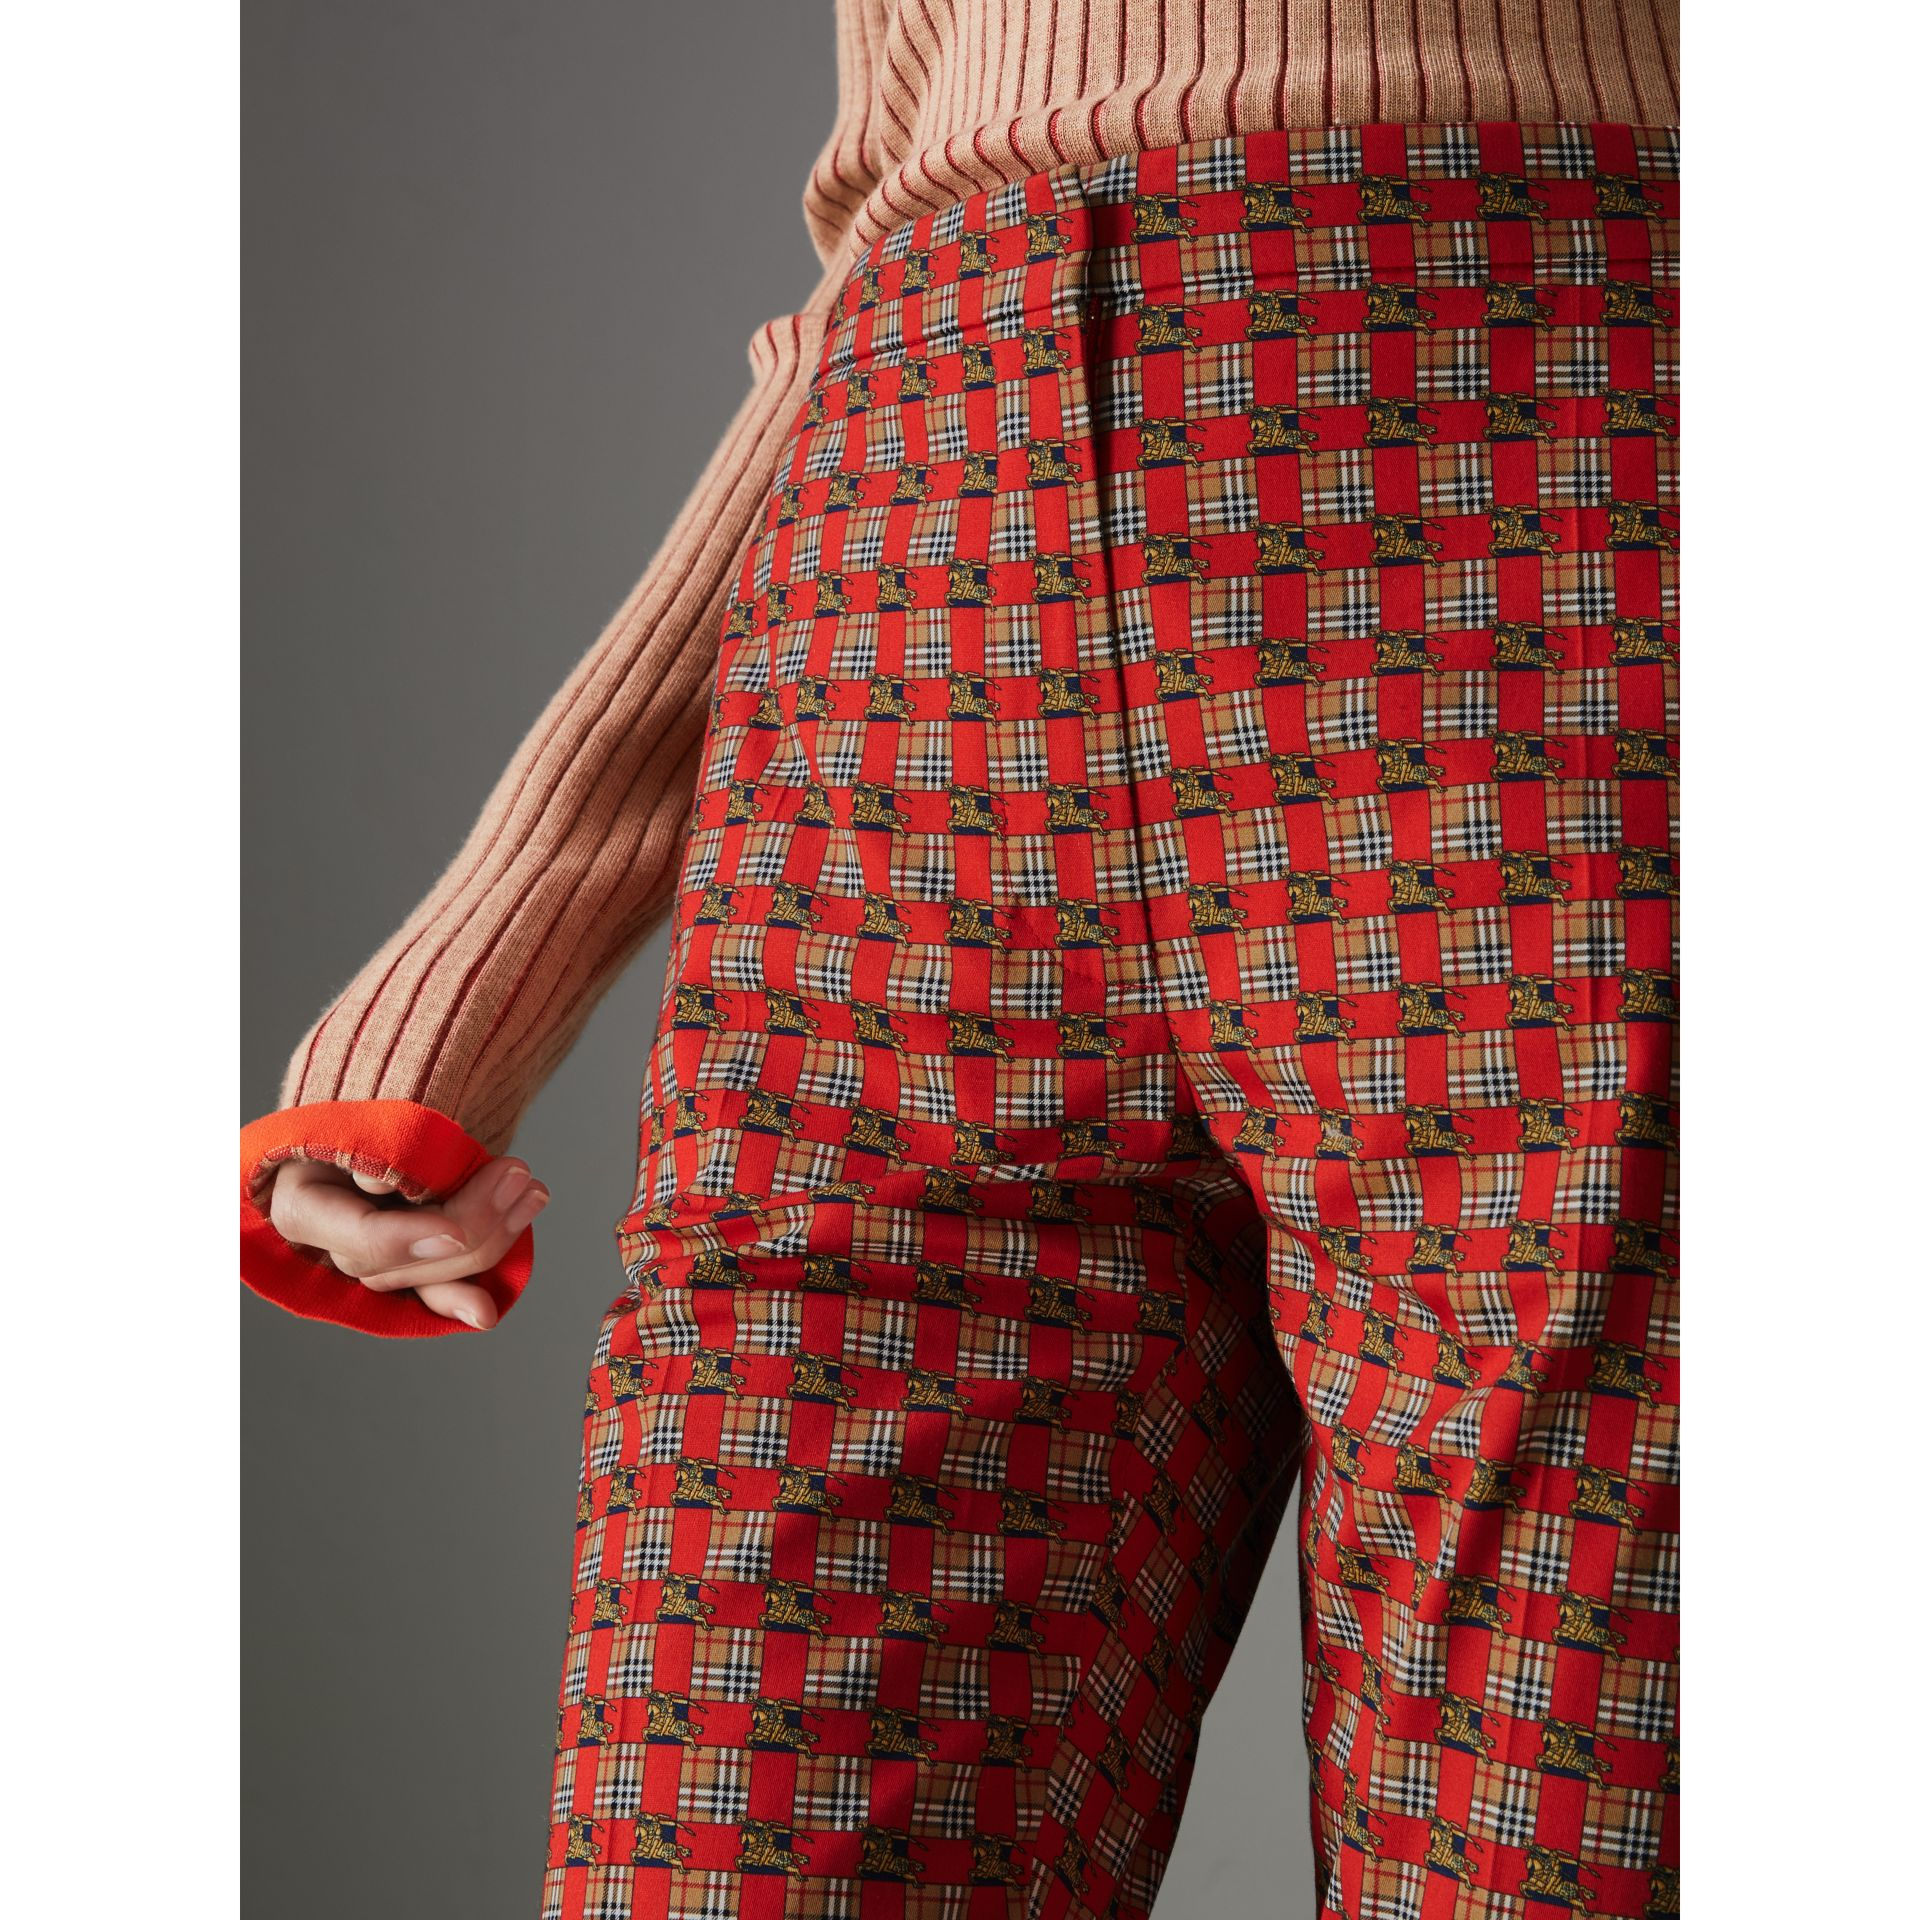 Tiled Archive Print Stretch Cotton Cigarette Trousers in Orange Red - Women | Burberry Australia - gallery image 4